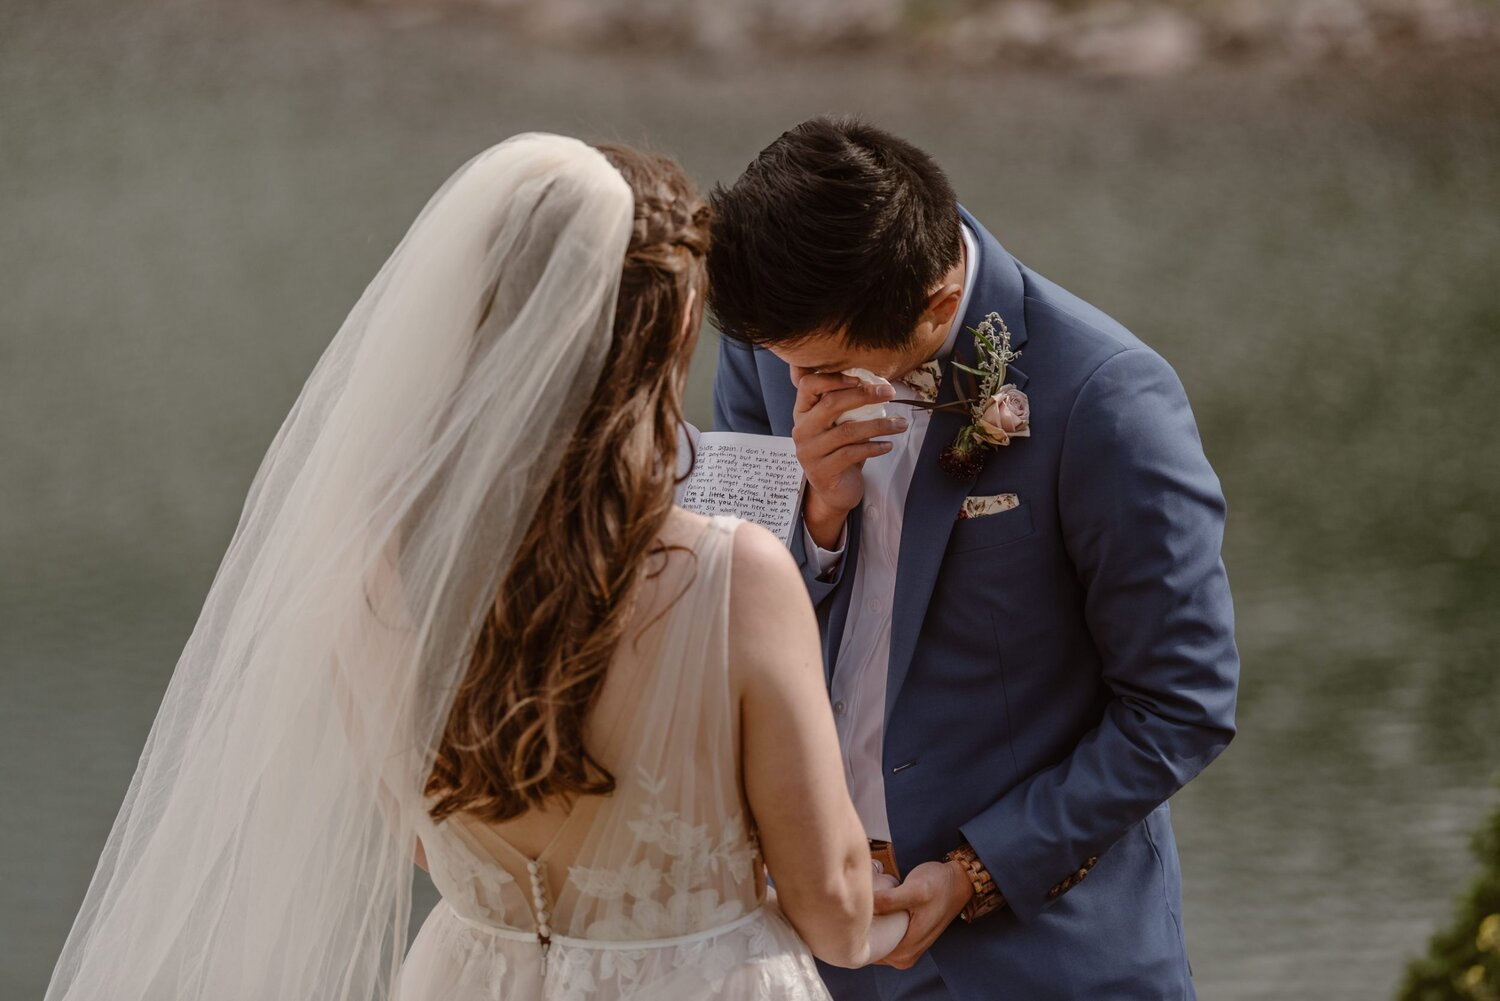 Groom wipes off tear while bride reads vows during their wedding ceremony.